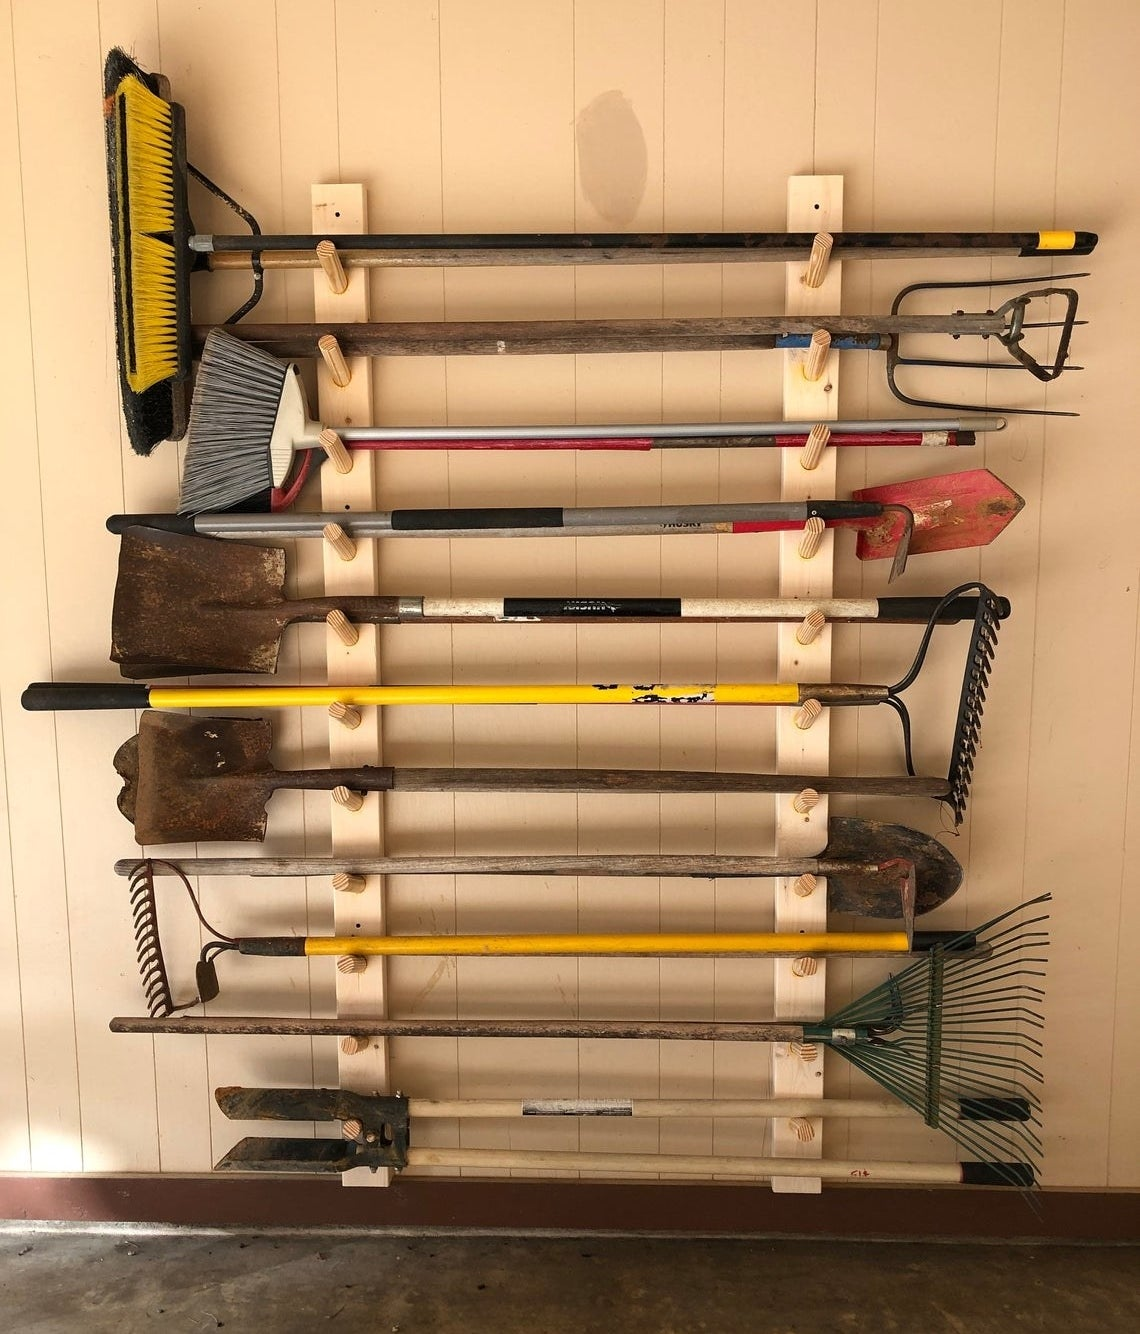 the wood rack holding about 11 yard tools